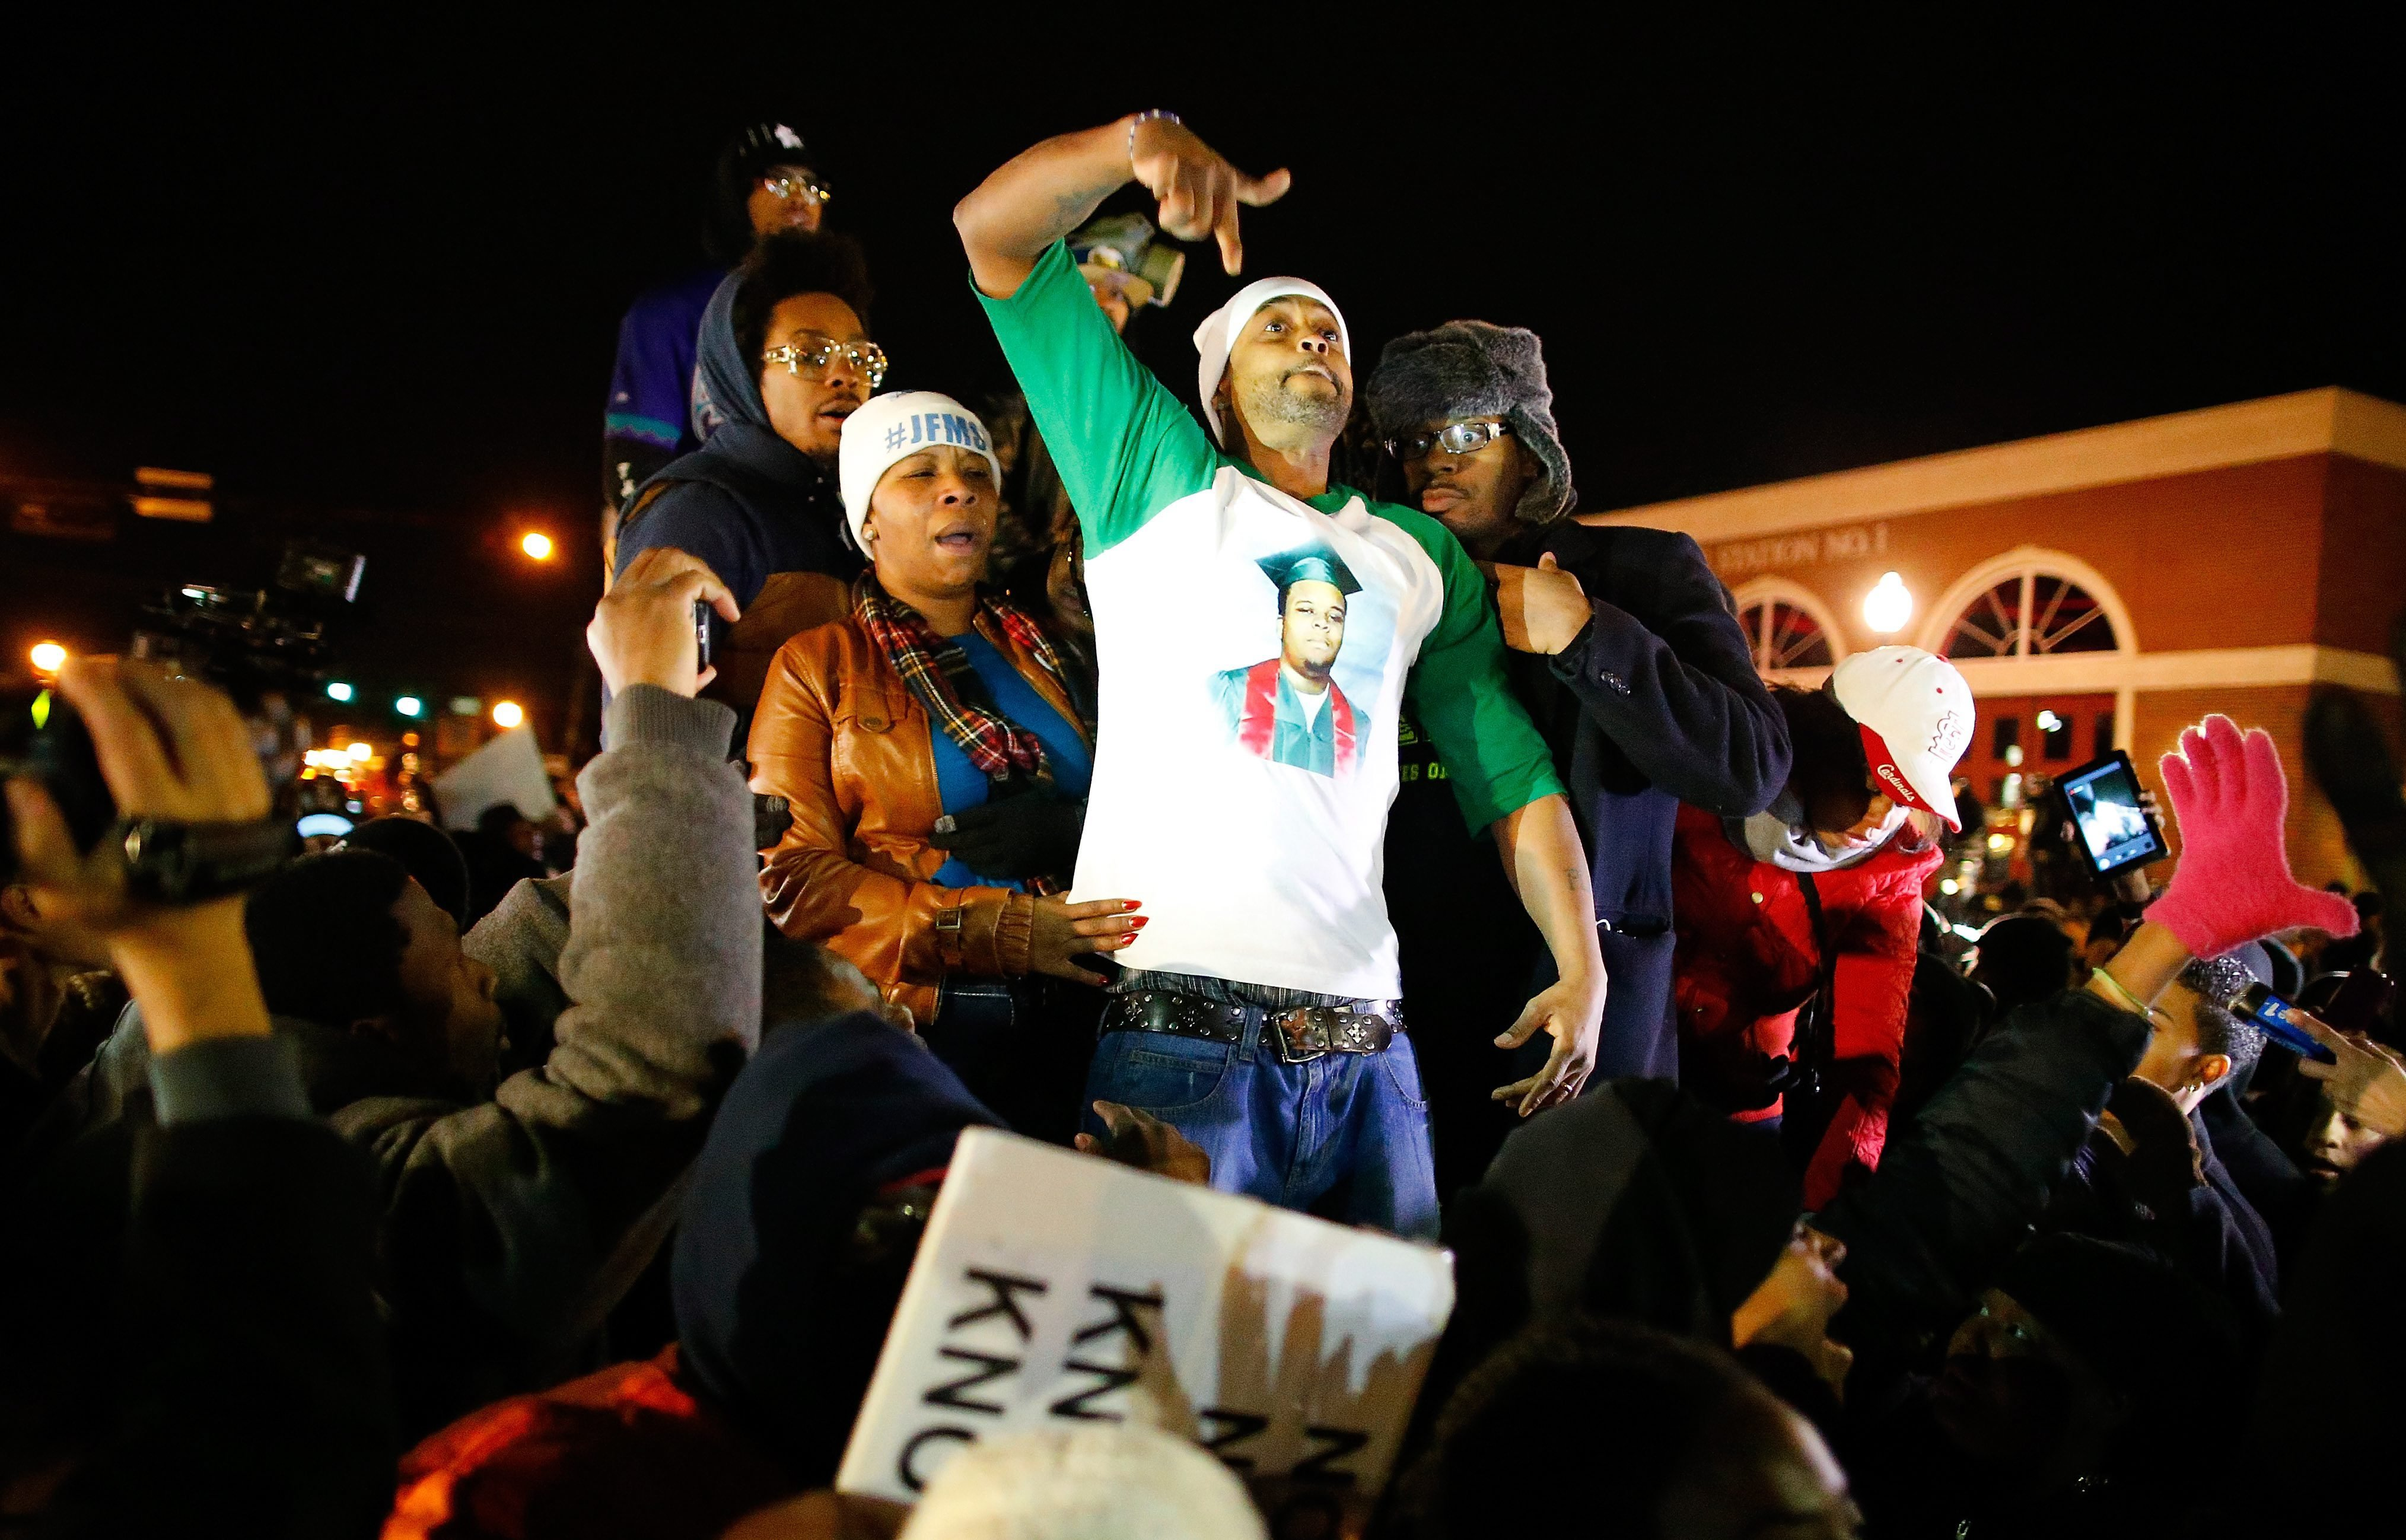 The mother of Michael Brown, Lesley McSpadden and her husband Louis Head gesture after the announced decision by the Grand Jury in FergusonMo. on Nov. 24, 2014.